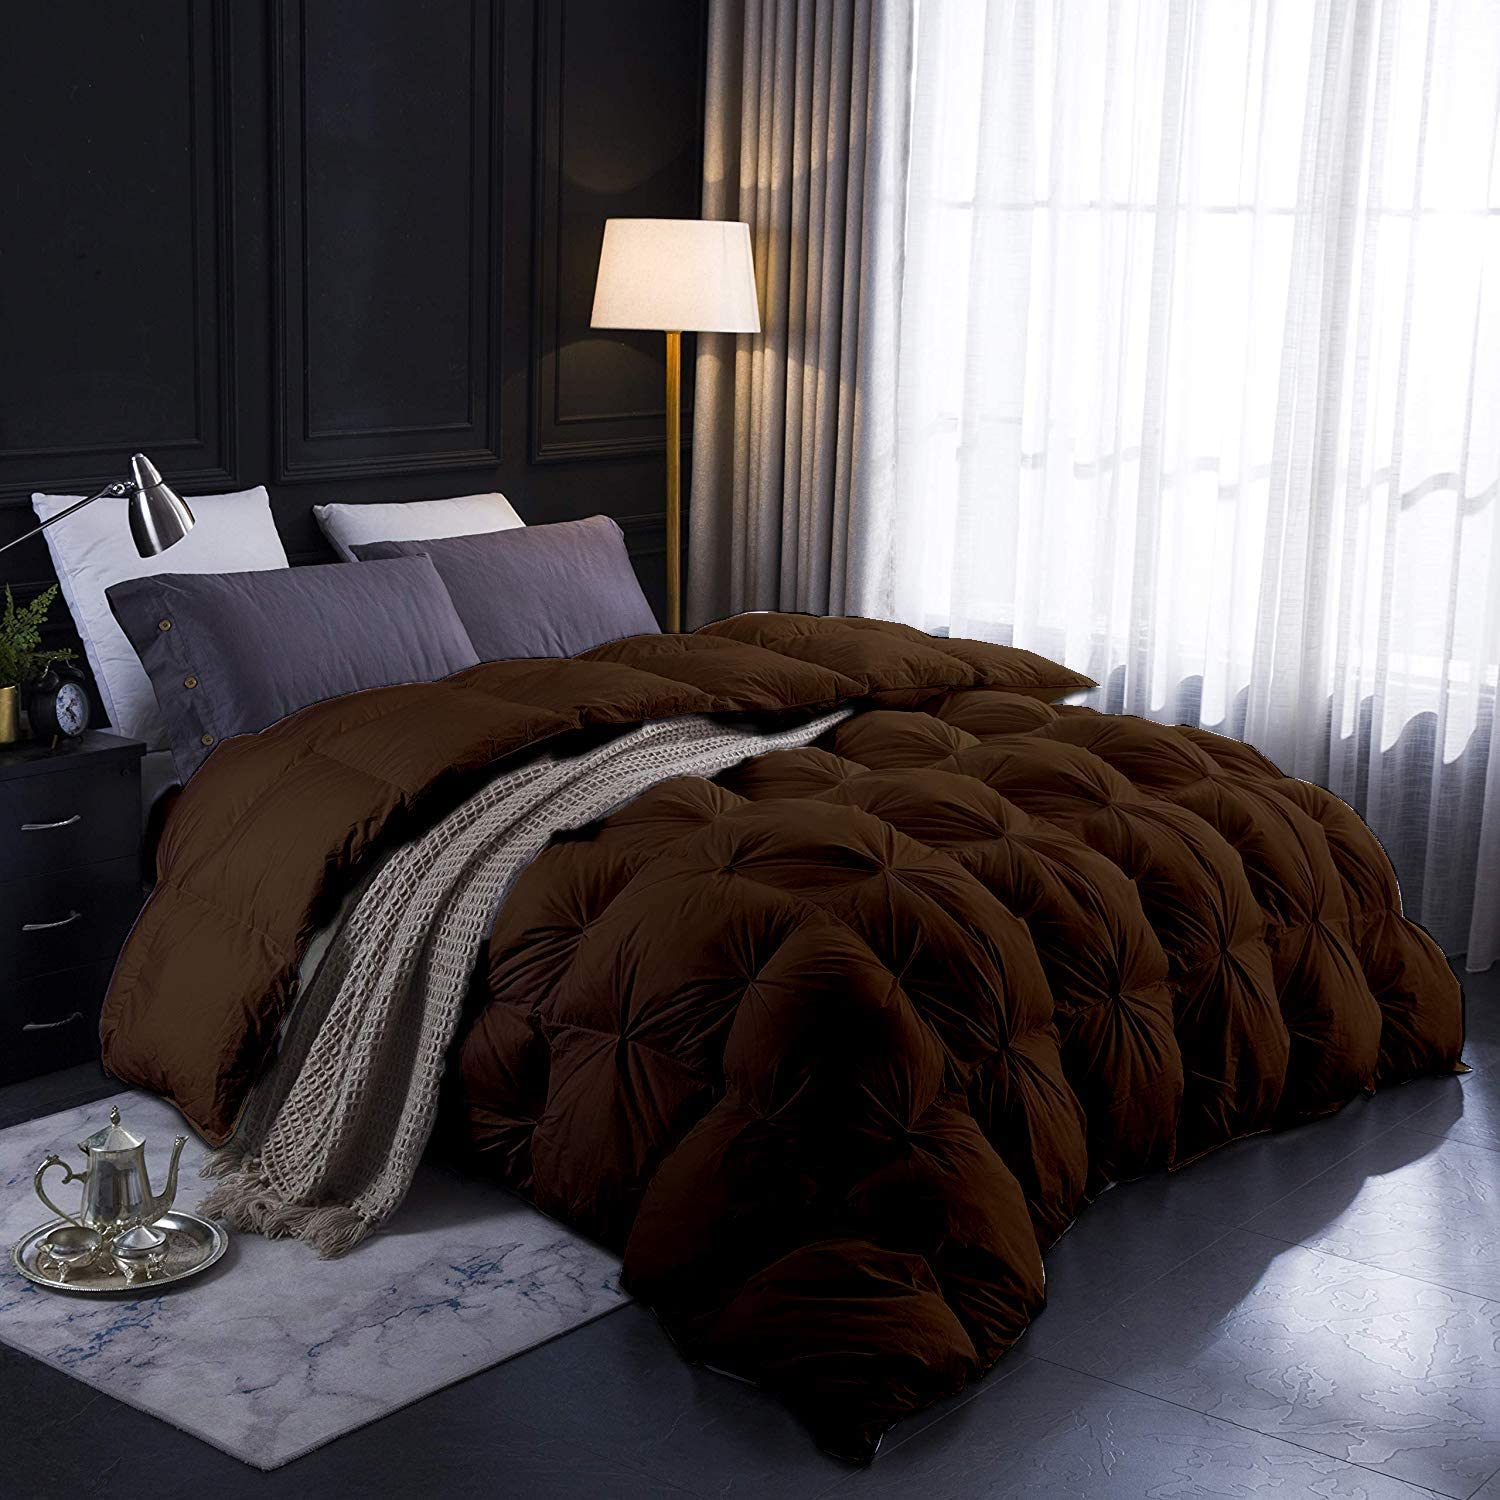 All-Season Goose Down Pinch Pleated Comforter Staple C List price 100% Opening large release sale Long